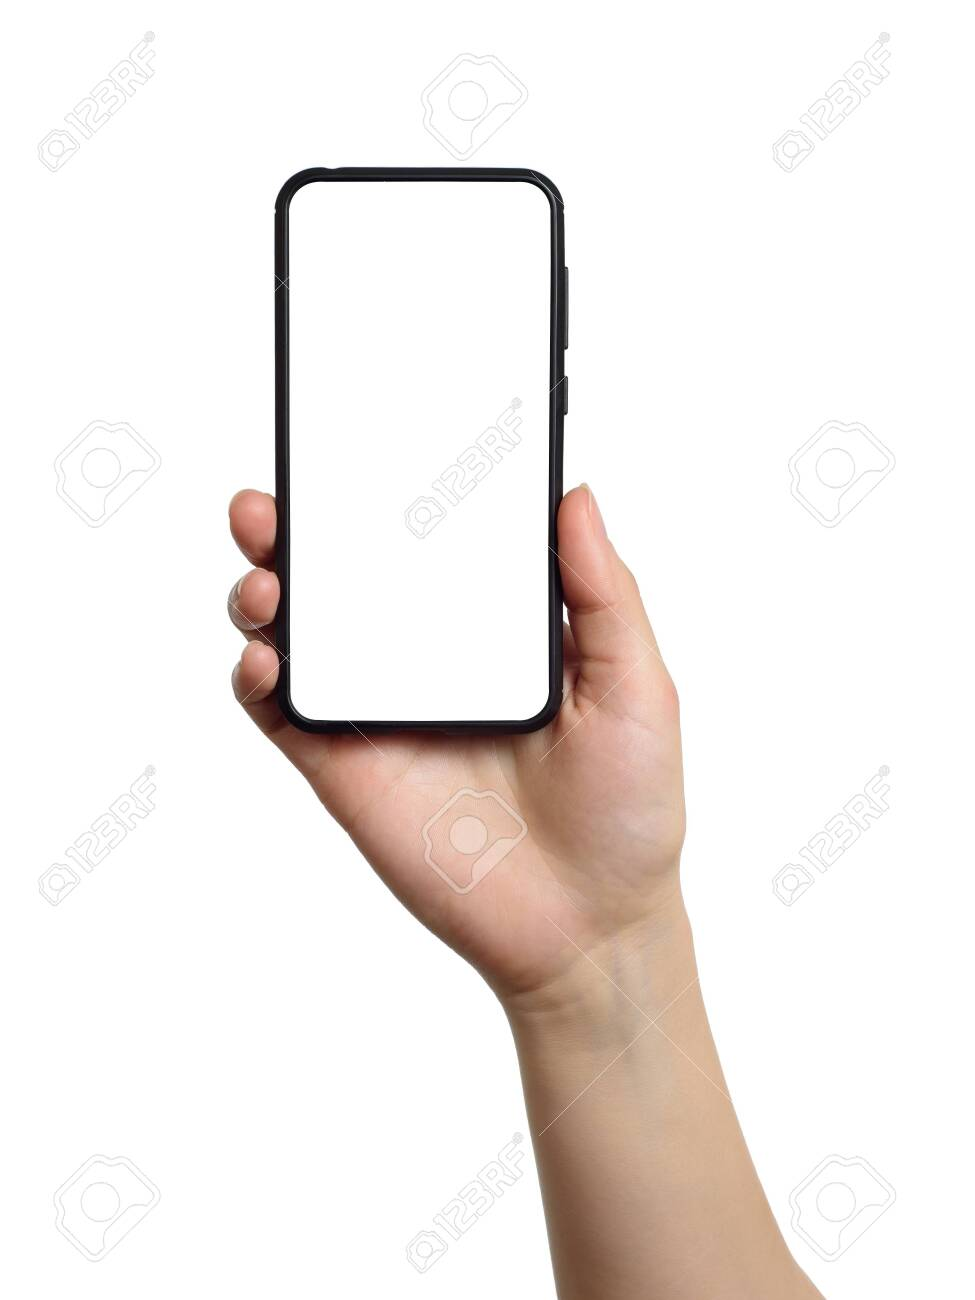 Woman hand holds smartphone with white screen. Isolated object on white background - 150084166